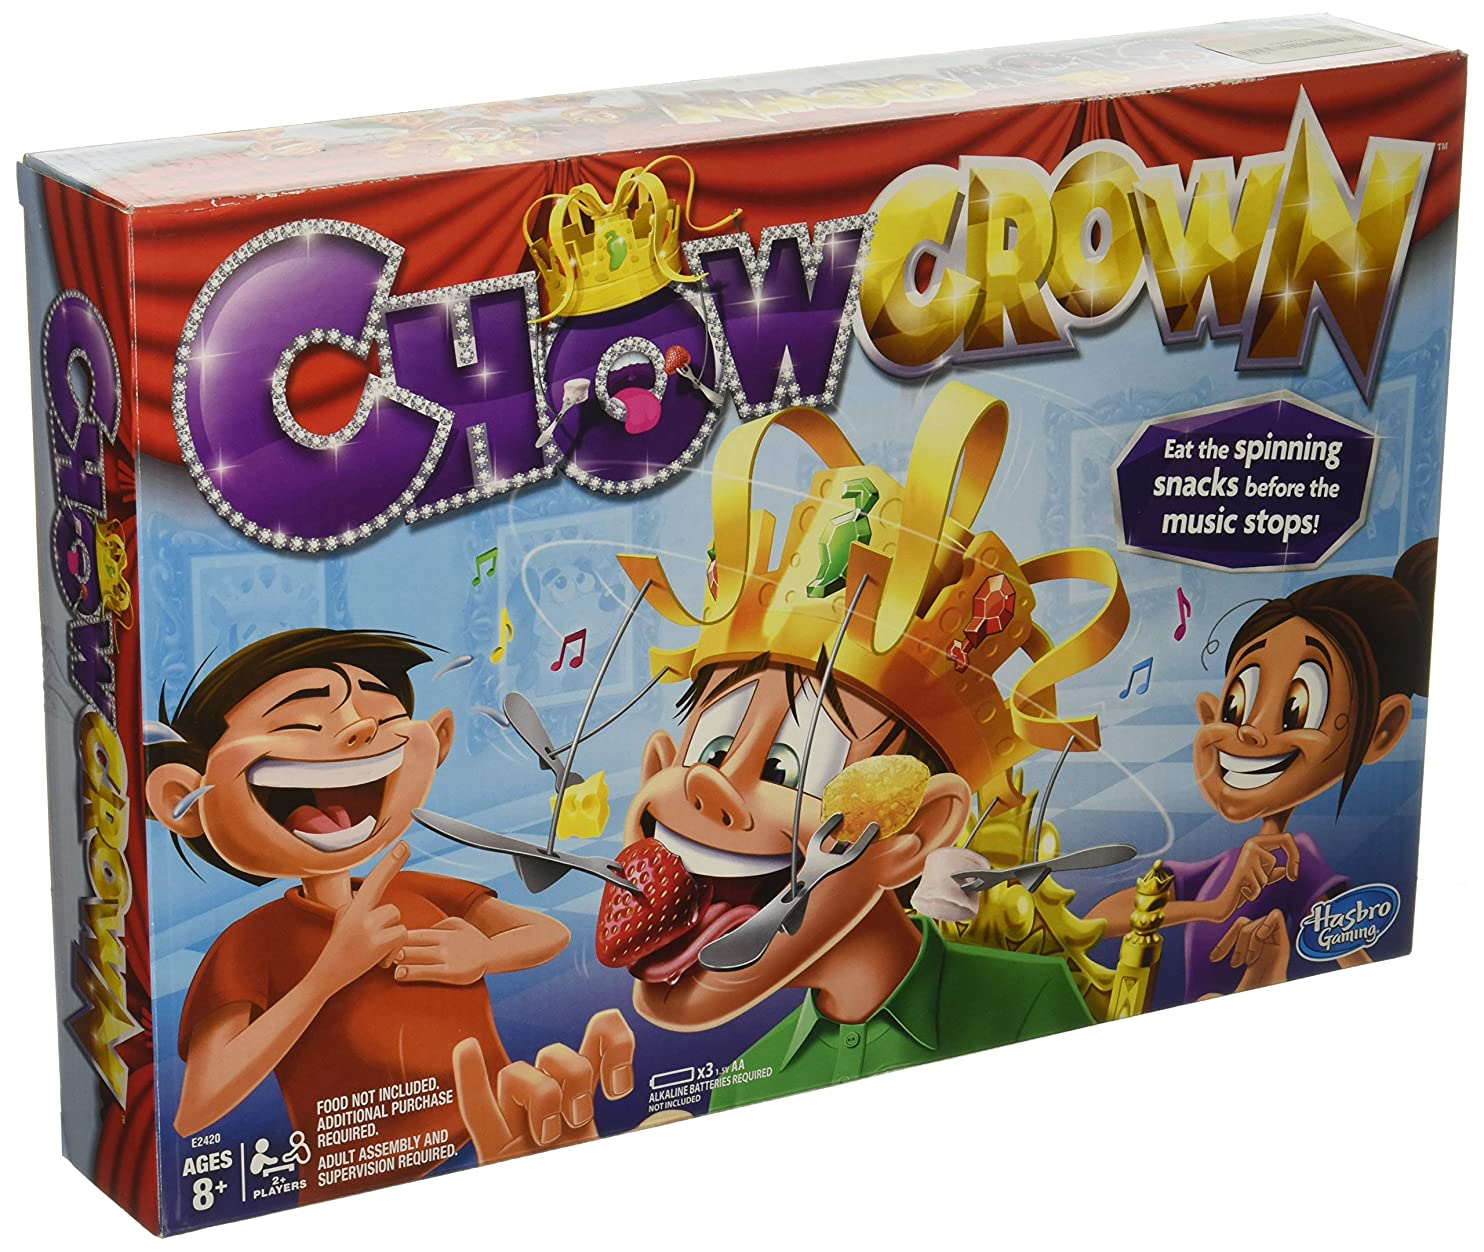 Chow Crown Game Kids Electronic Spinning Crown Snacks Food Kids & Family Game upneotcazyi58